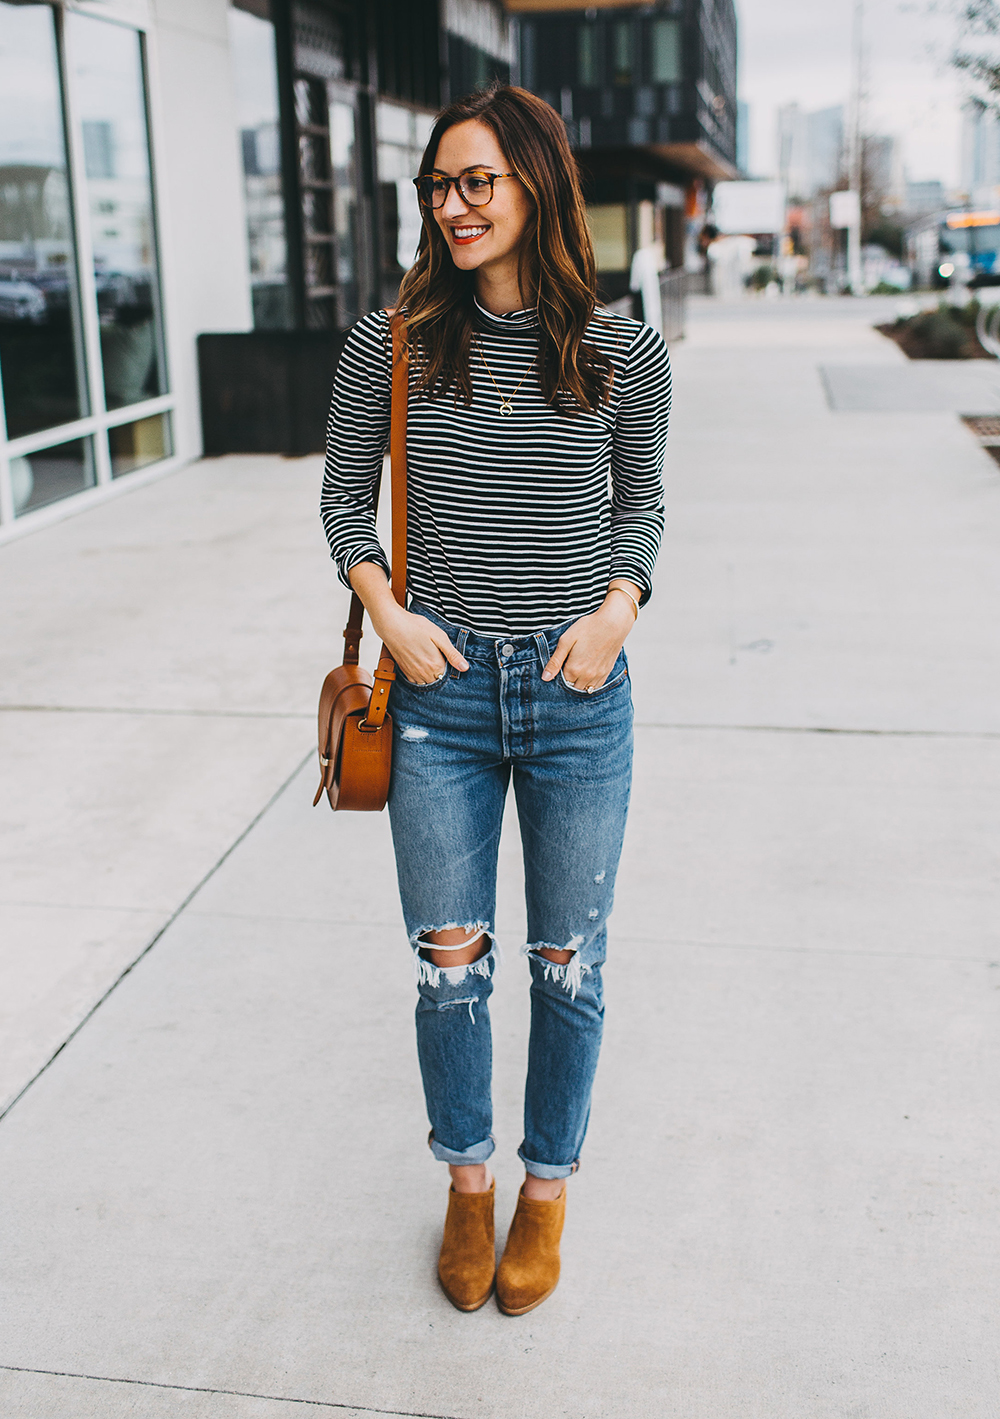 livvyland-blog-olivia-watson-austin-texas-fashion-blogger-j-crew-striped-turtleneck-outfit-idea-inspiration-1